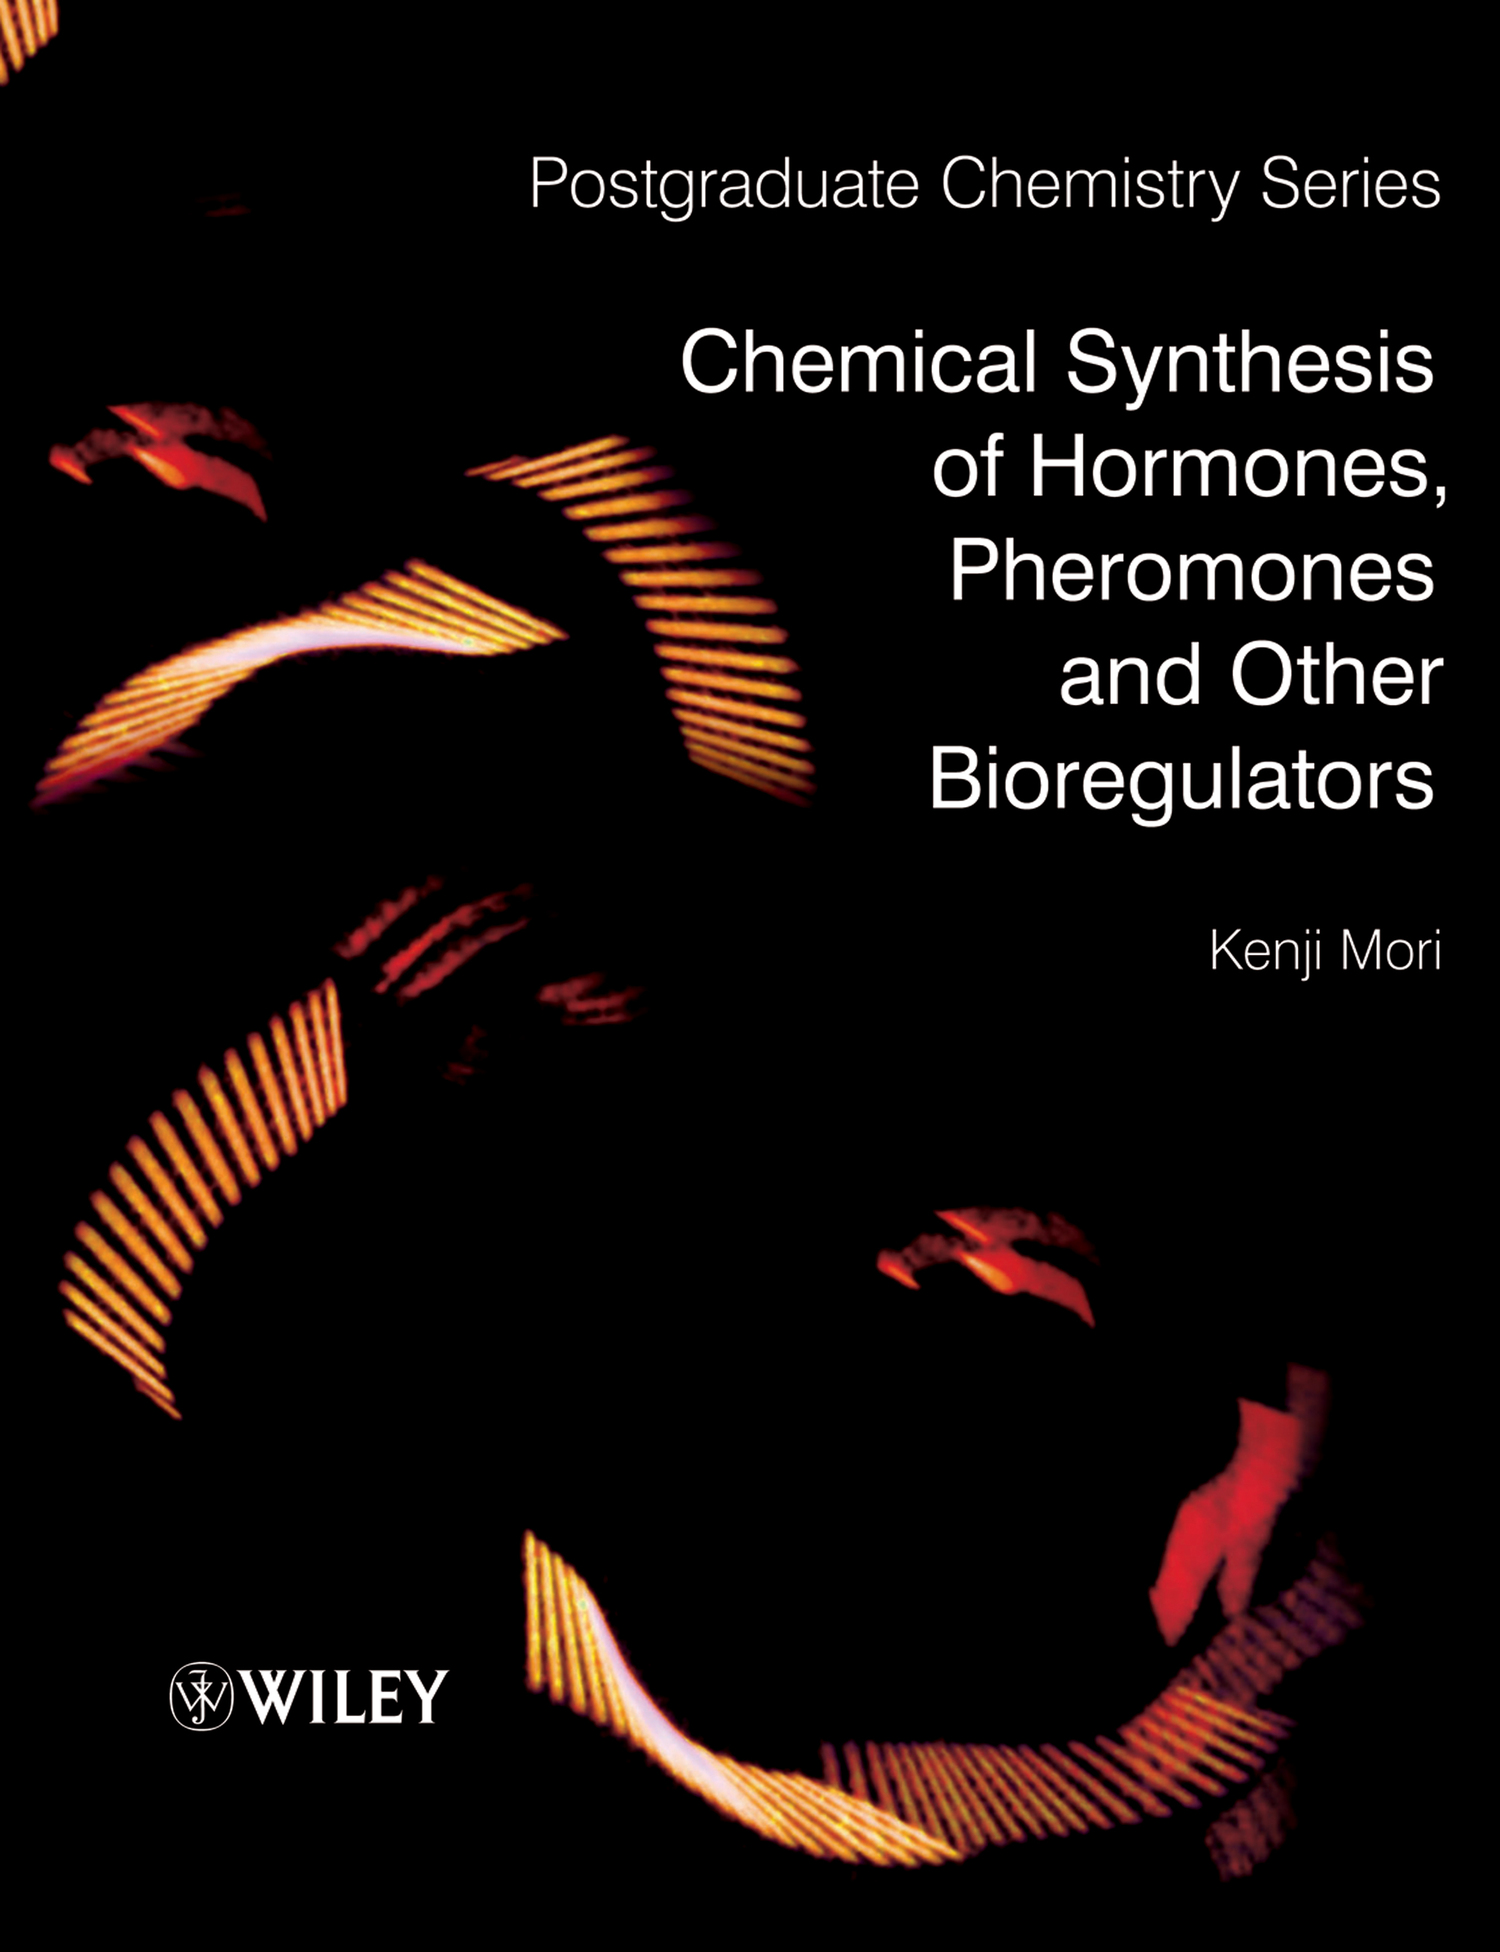 все цены на Kenji  Mori Chemical Synthesis of Hormones, Pheromones and Other Bioregulators в интернете